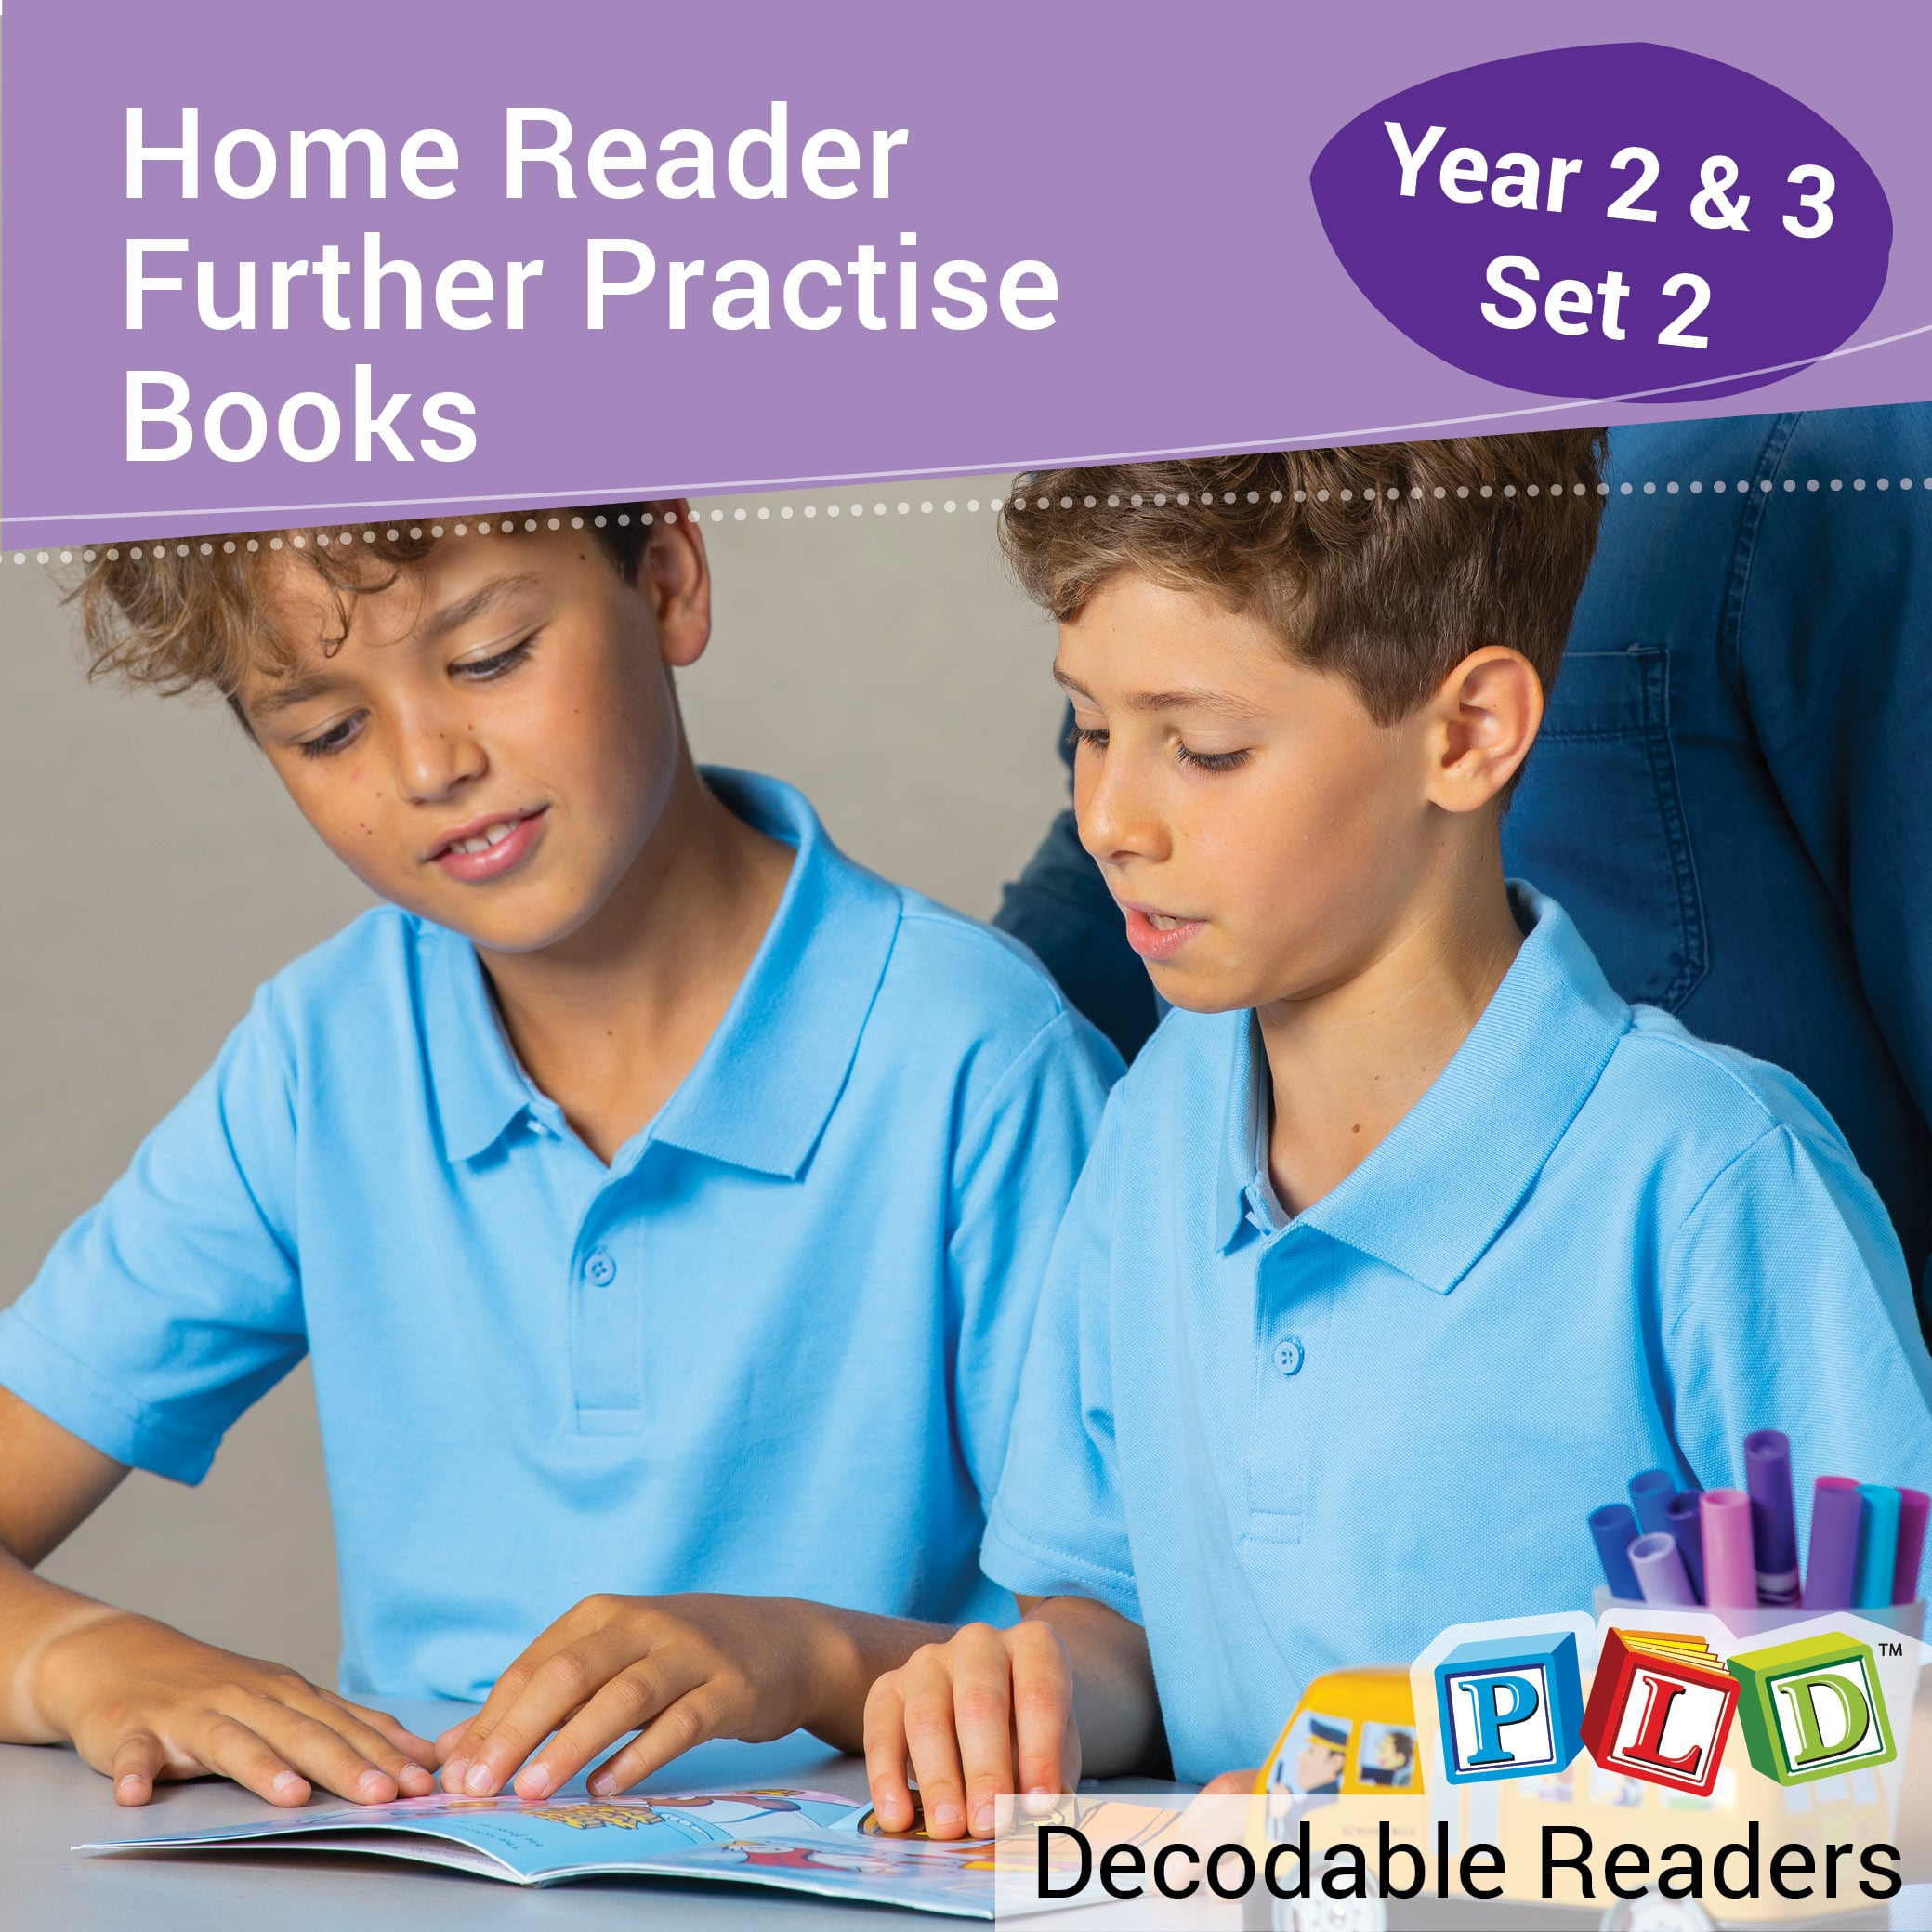 Home Reader Further Practise: Set 2 Year 2 & 3